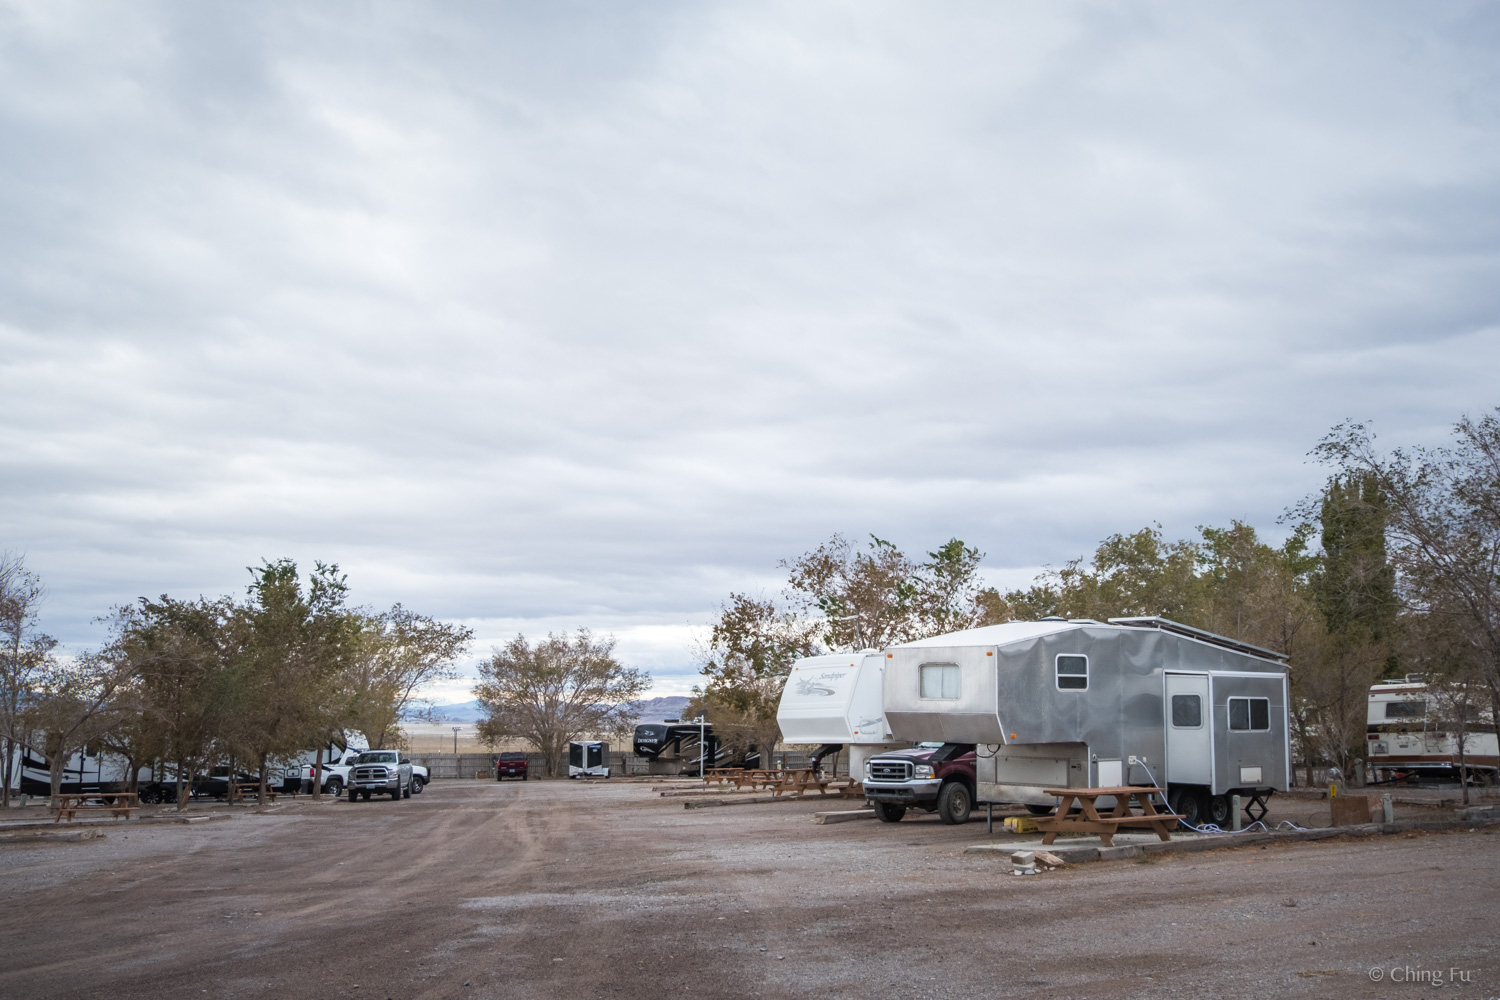 West Wendover KOA isn't anything special, but it got the job done.